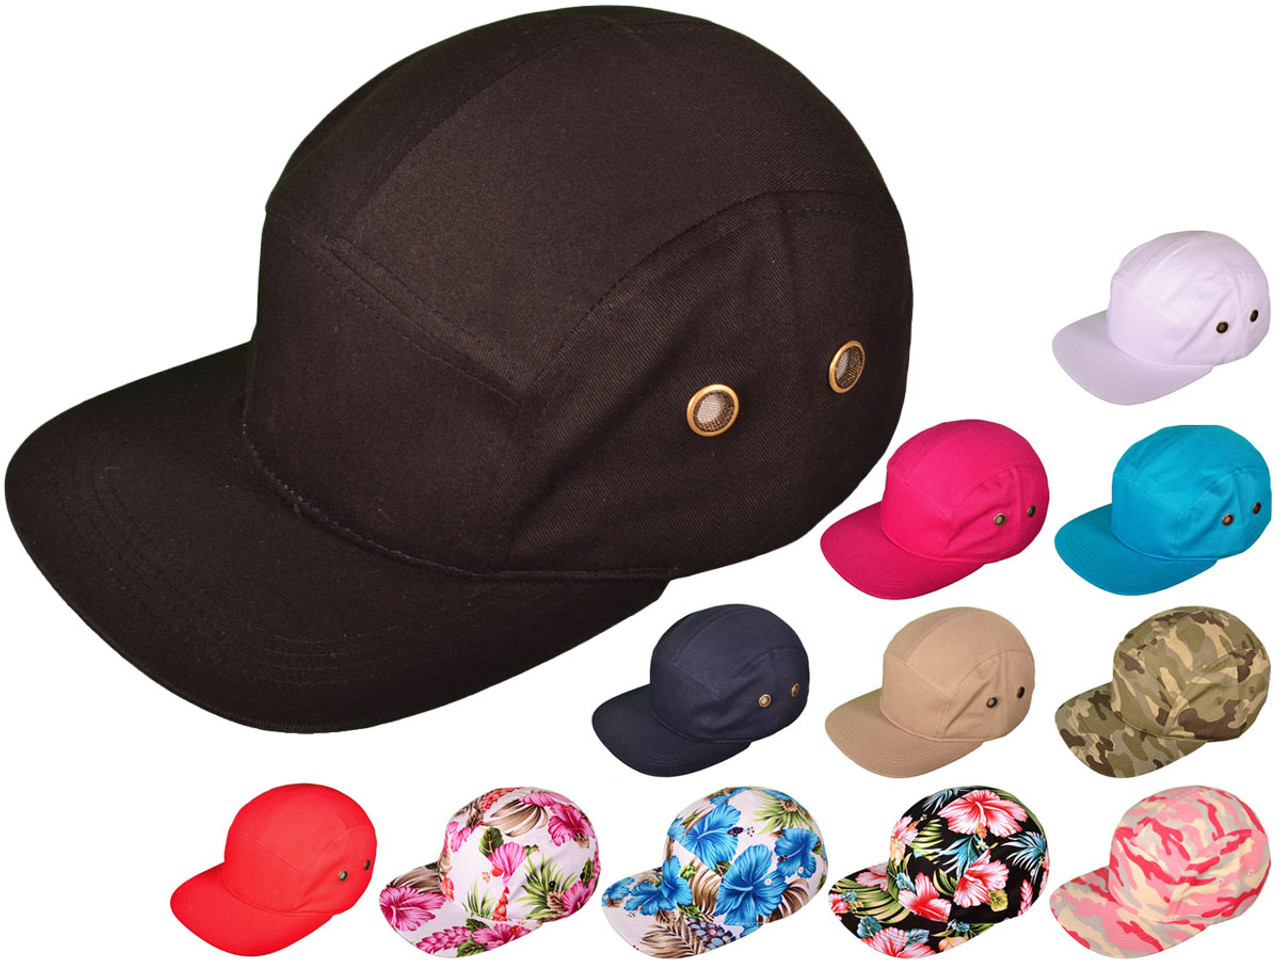 60ecbe973 5 Panel Biker/Painter Hats - BK Caps Flat Bill Cotton Caps w/Leather  Strapback (12 Colors Available) - 21496